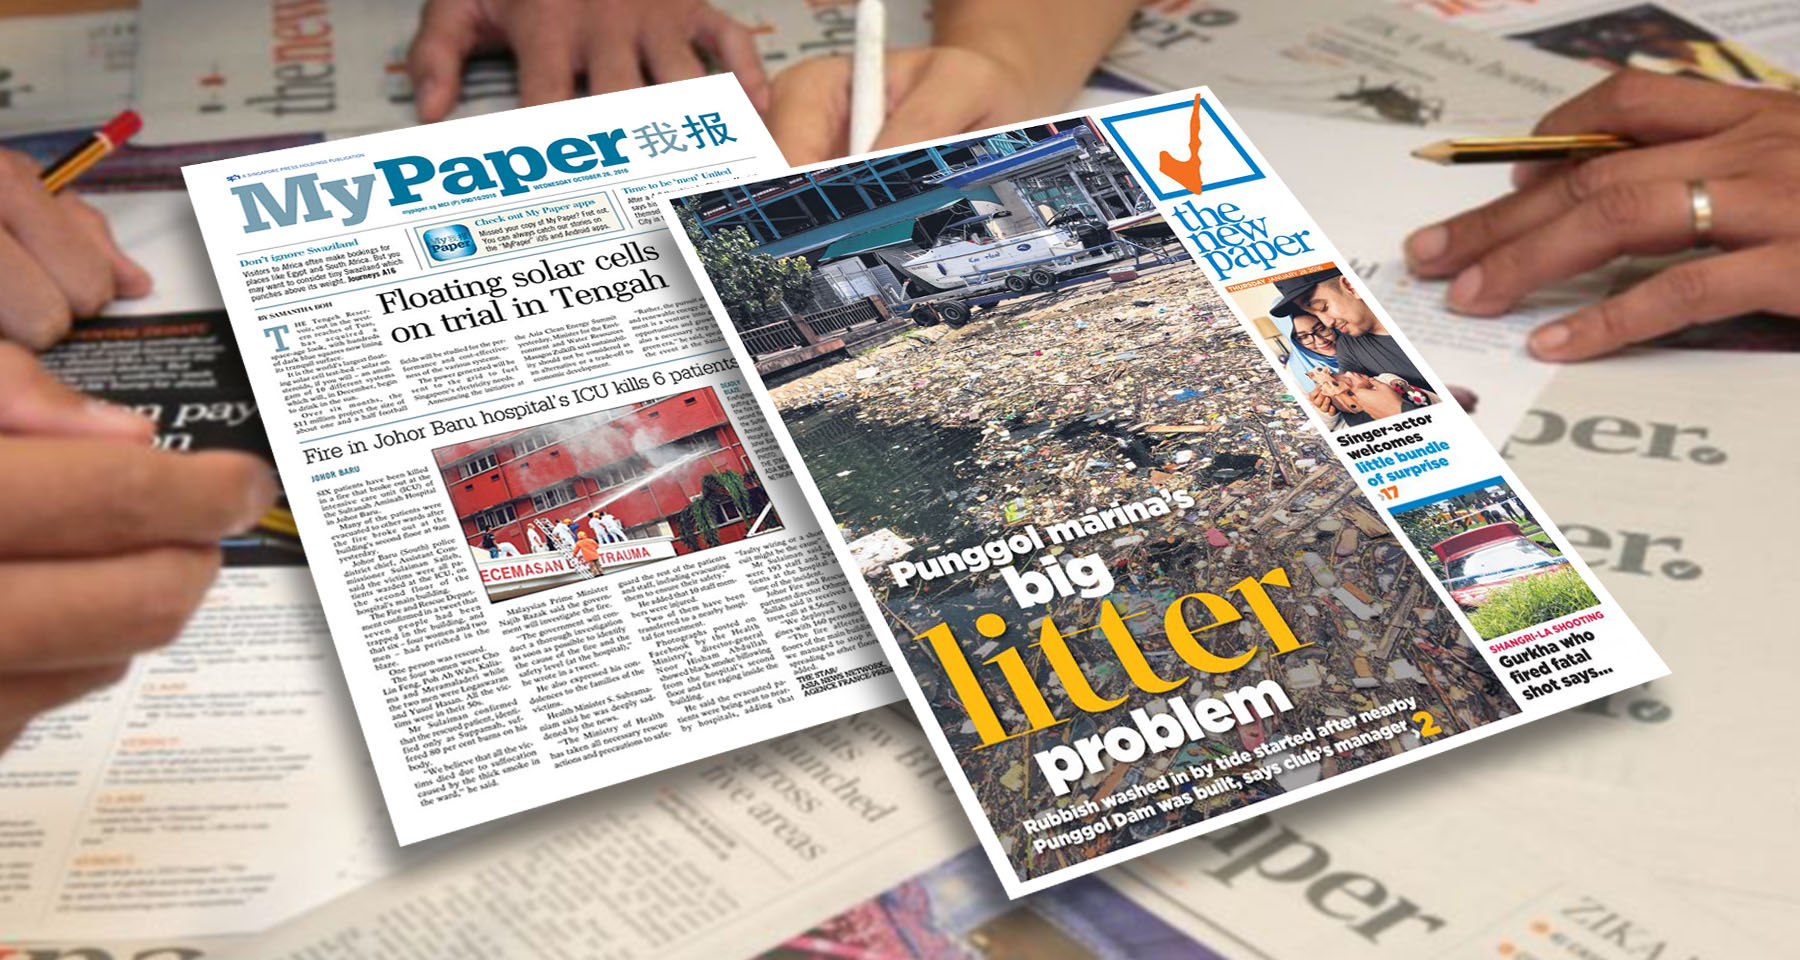 In Singapore, free tabloid newspapers spark digital battle